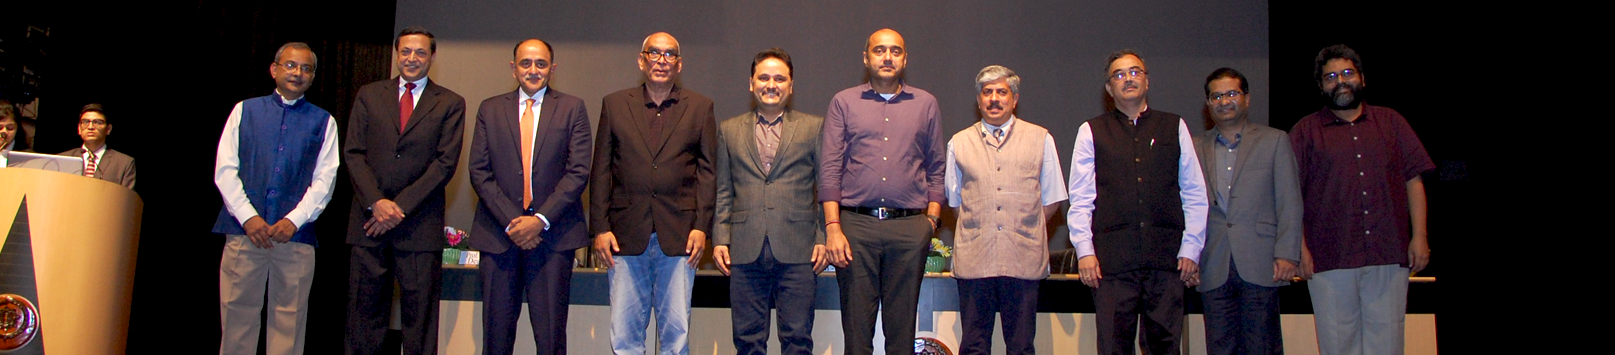 IIM Calcutta proudly offered Distinguished Alumnus Award 2017 to Ajit Balakrishnan, Prof. Ajay K. Kohli, Shyam Srinivasan, Gopal Vittal, and Amish Tripathi celebrating its 57th Foundation Day on 14 November 2017